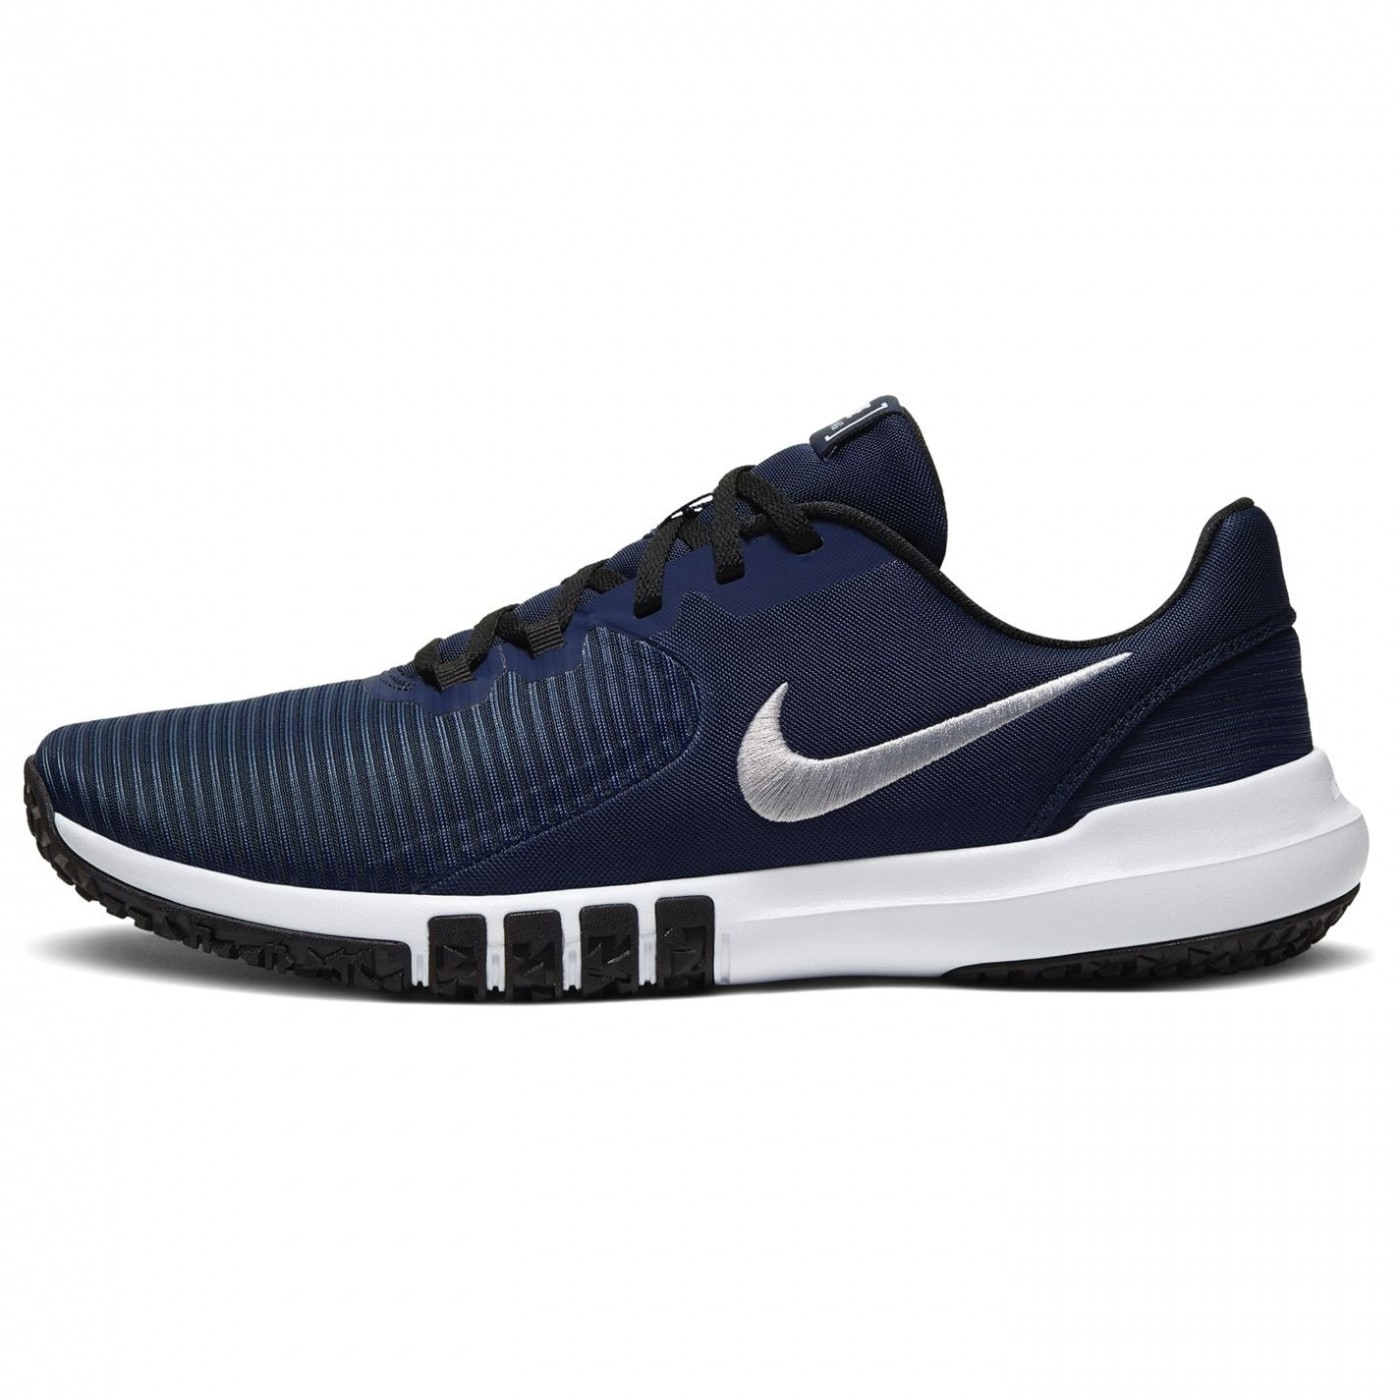 Men's trainers Nike Flex Control 4